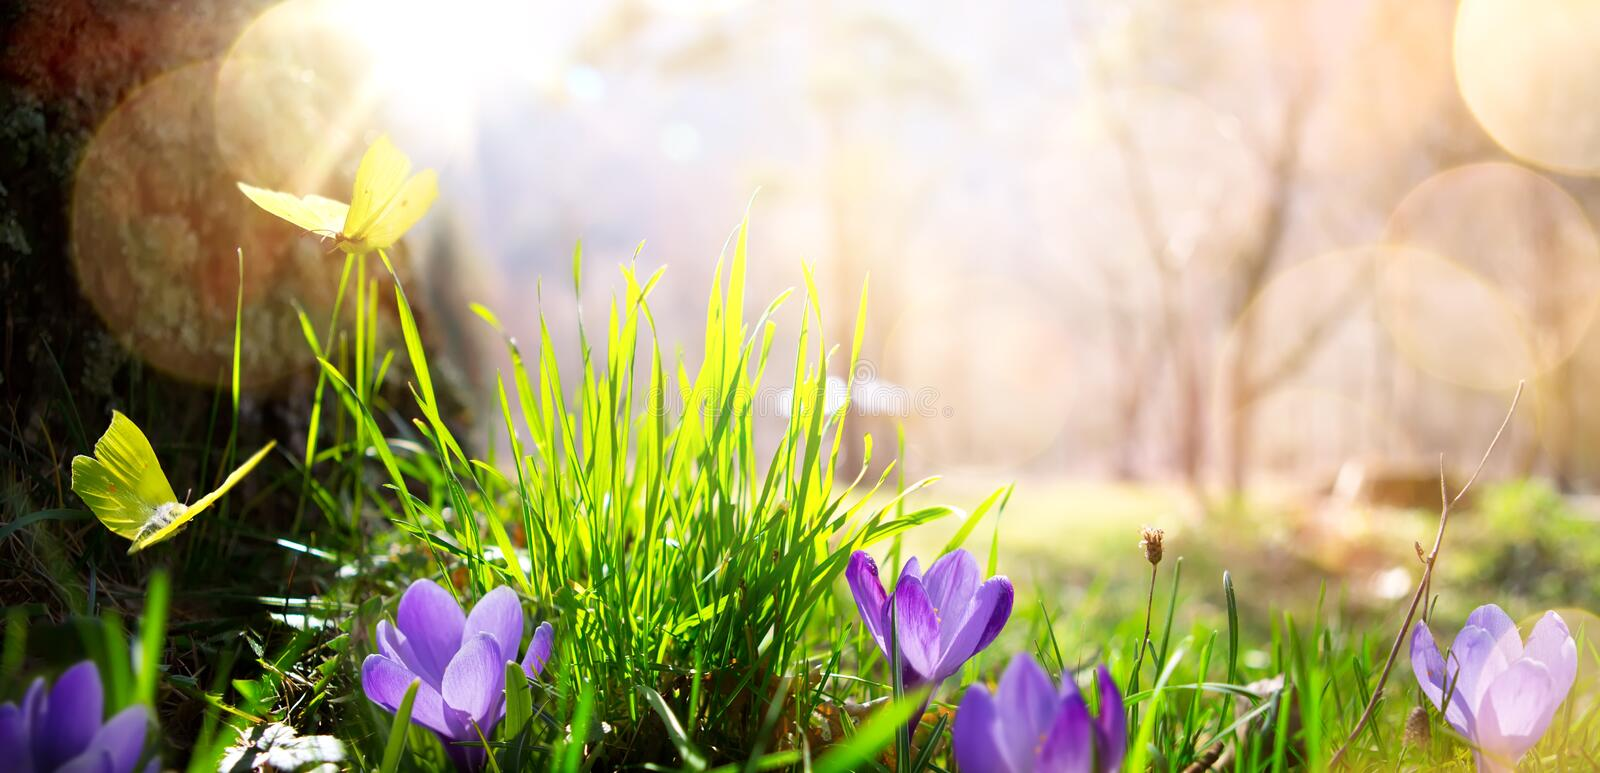 Abstract nature spring Background; spring flower and butterfly royalty free stock photography